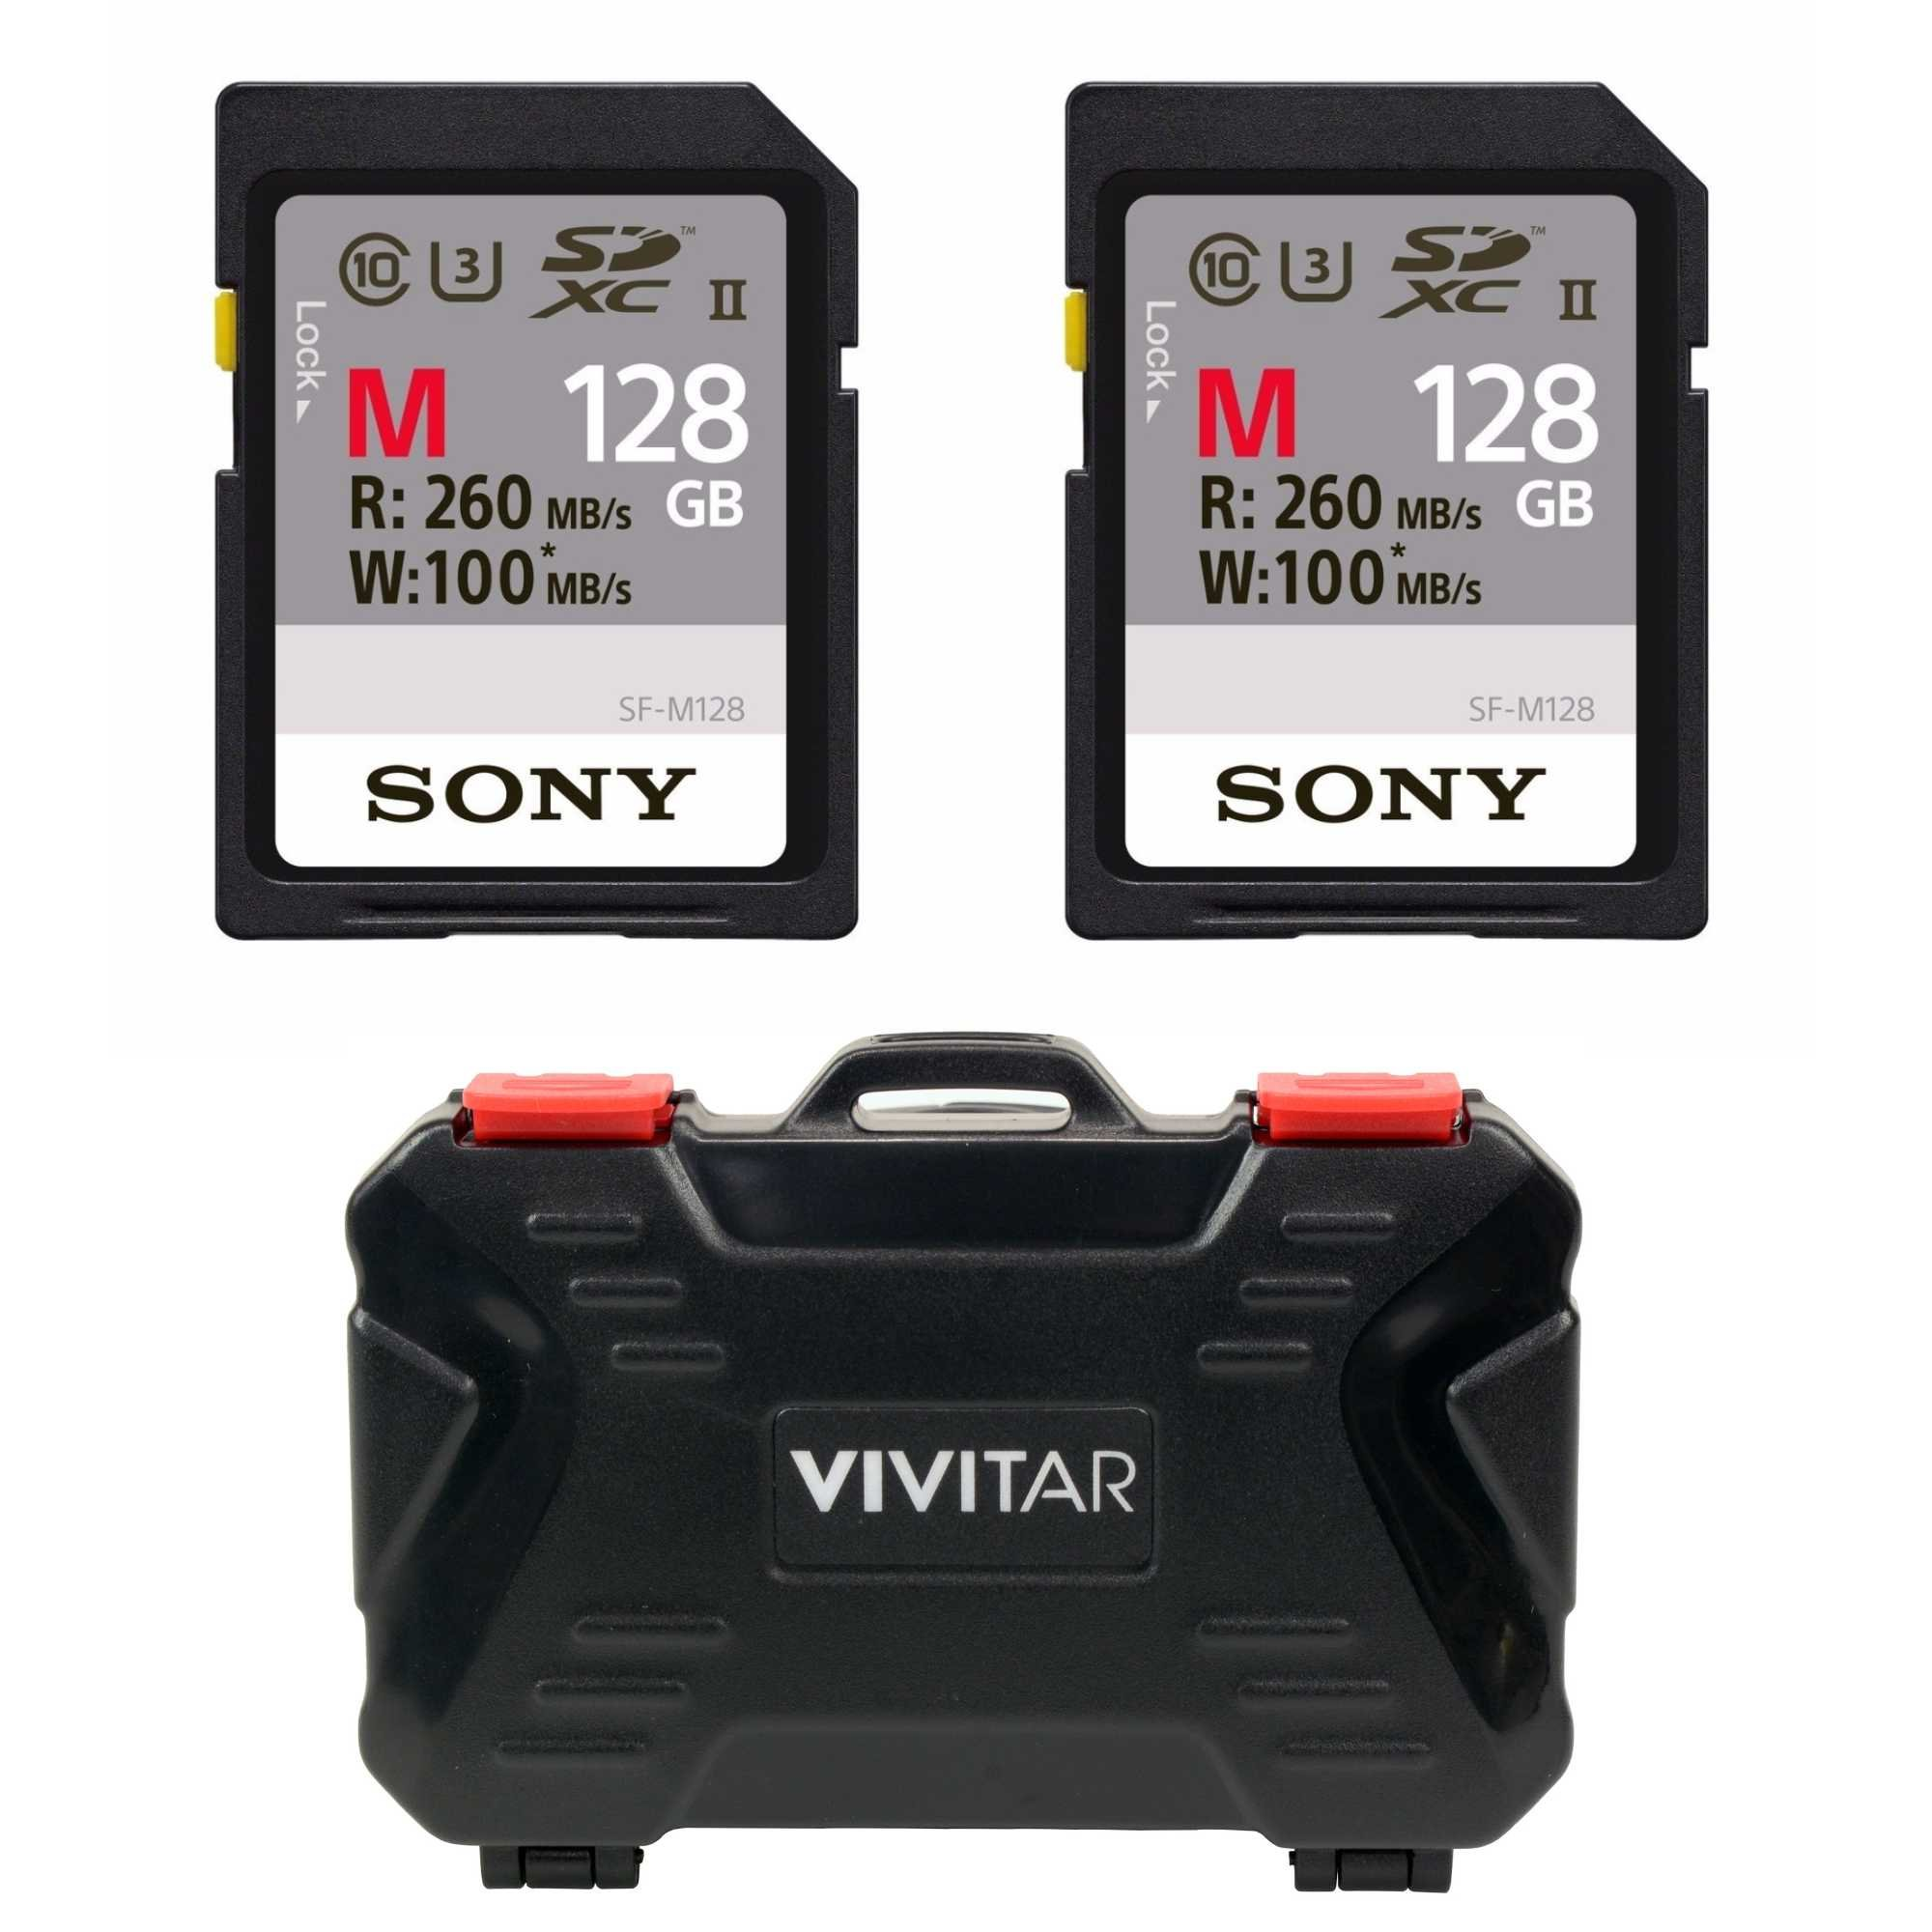 Sony M Series UHS-II SDXC Memory Card (U3) 2-Pack with Versatile Memory Card Holder (128GB 2-Pack)